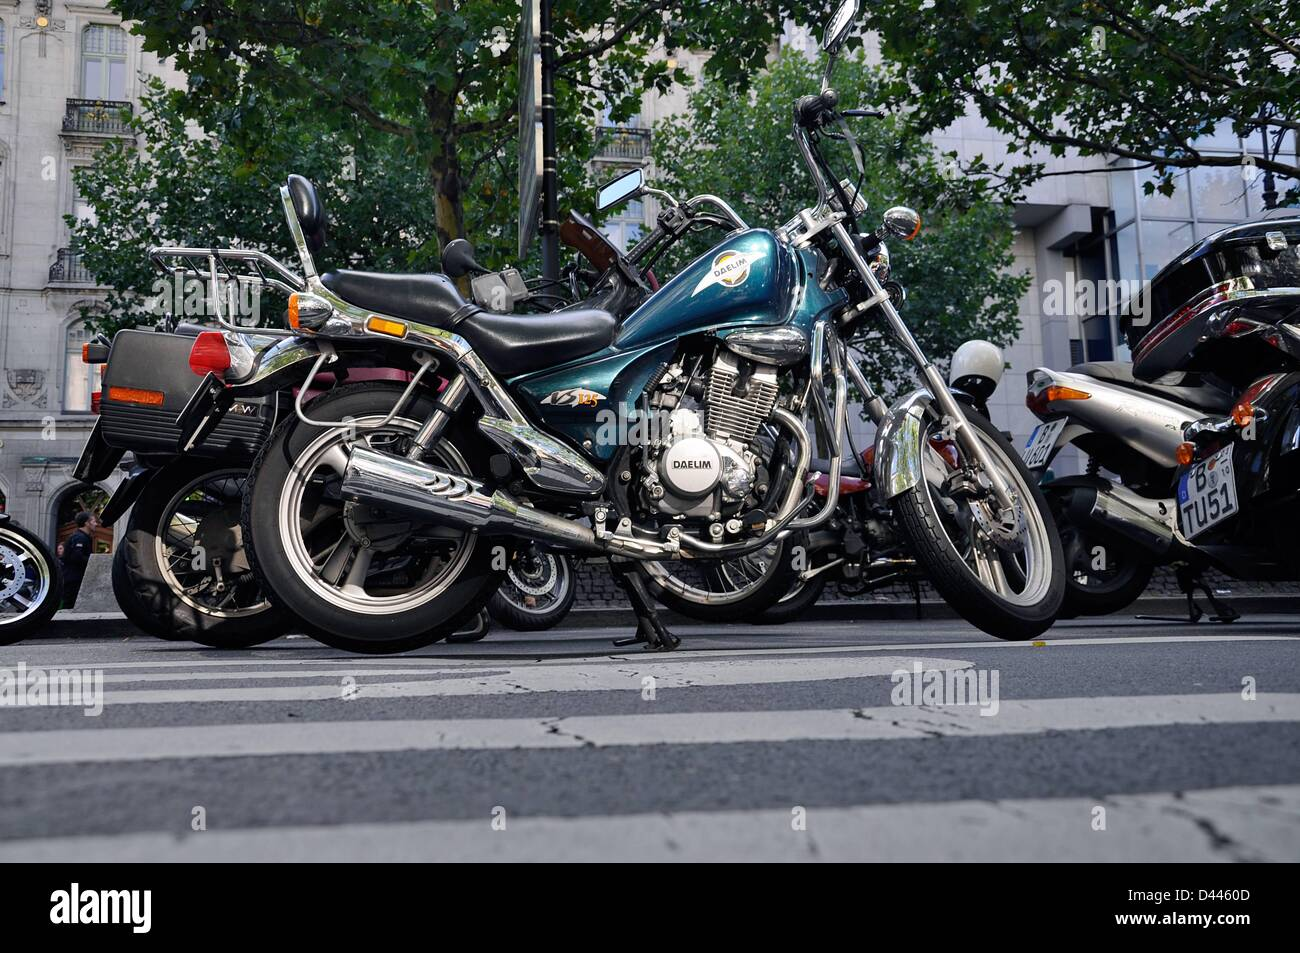 """View of motorbikes, in the middle a bike of the type """"Daelim"""", during a ride to remember in Berlin, Germany, 9 October Stock Photo"""